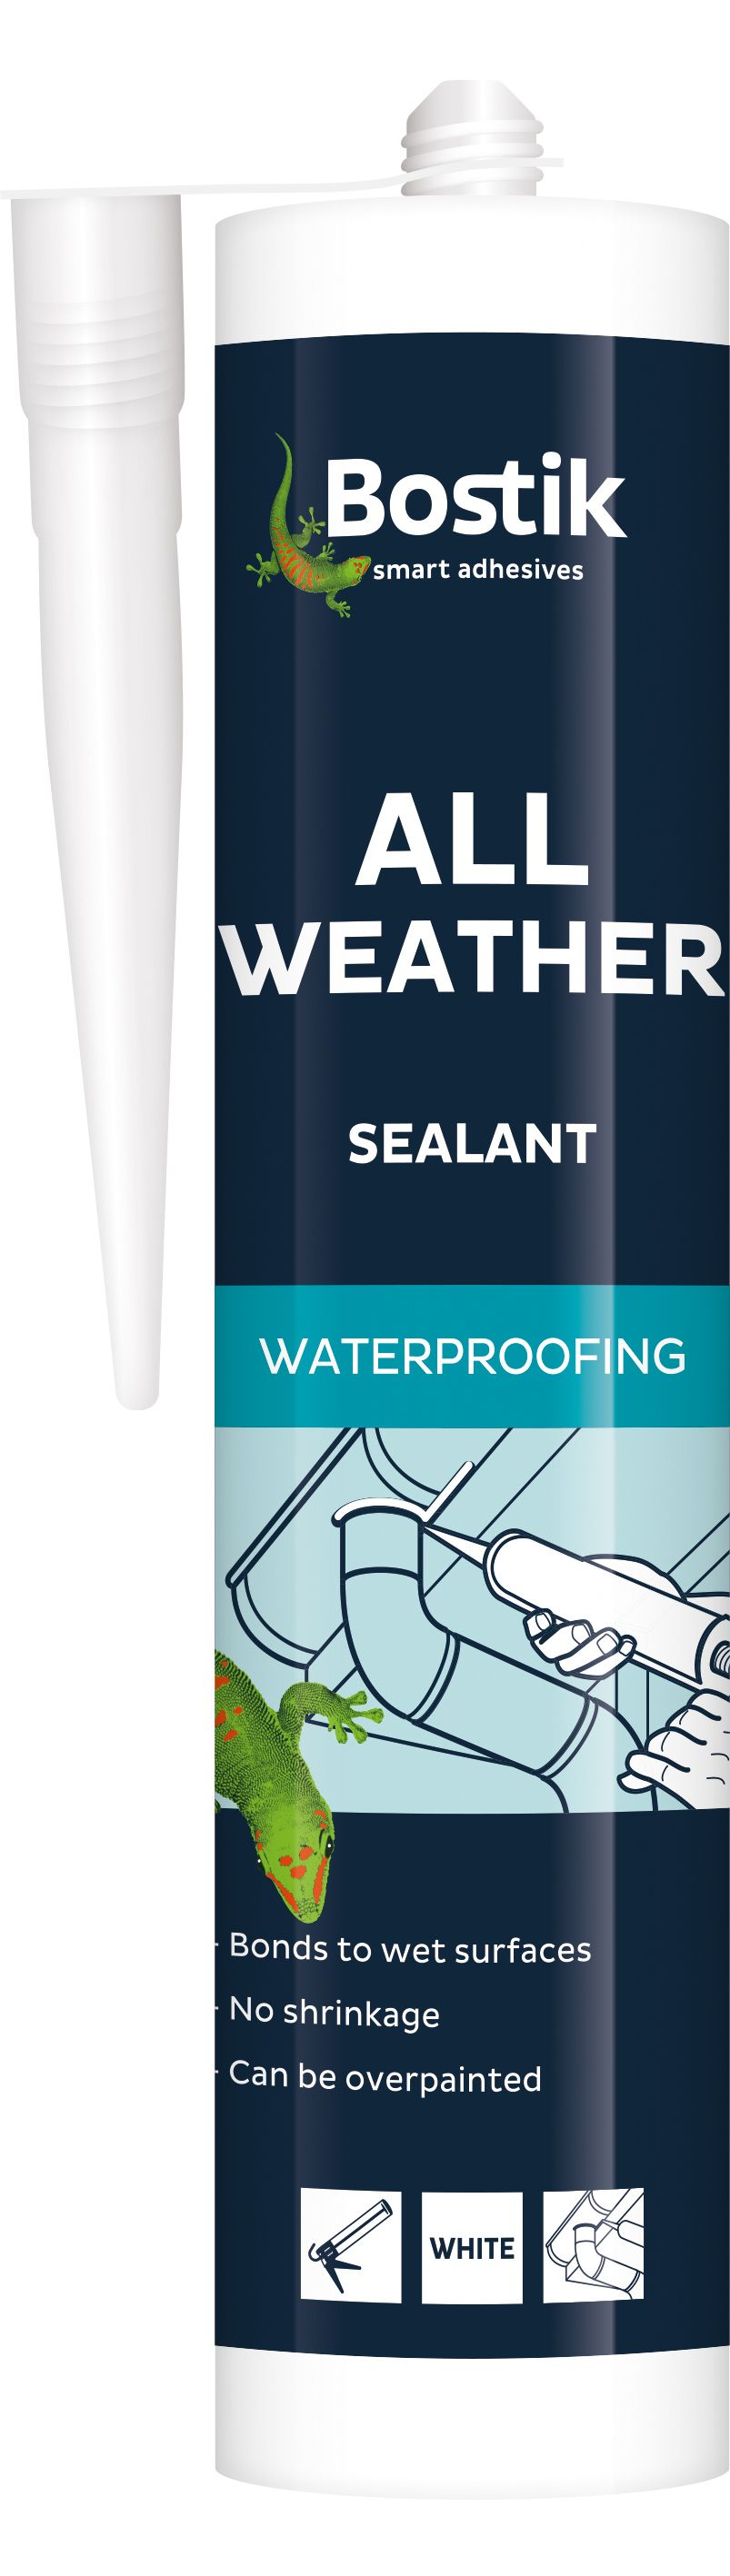 Bostik Ready To Use Weatherproof Leak Repair White Sealant 290 Ml